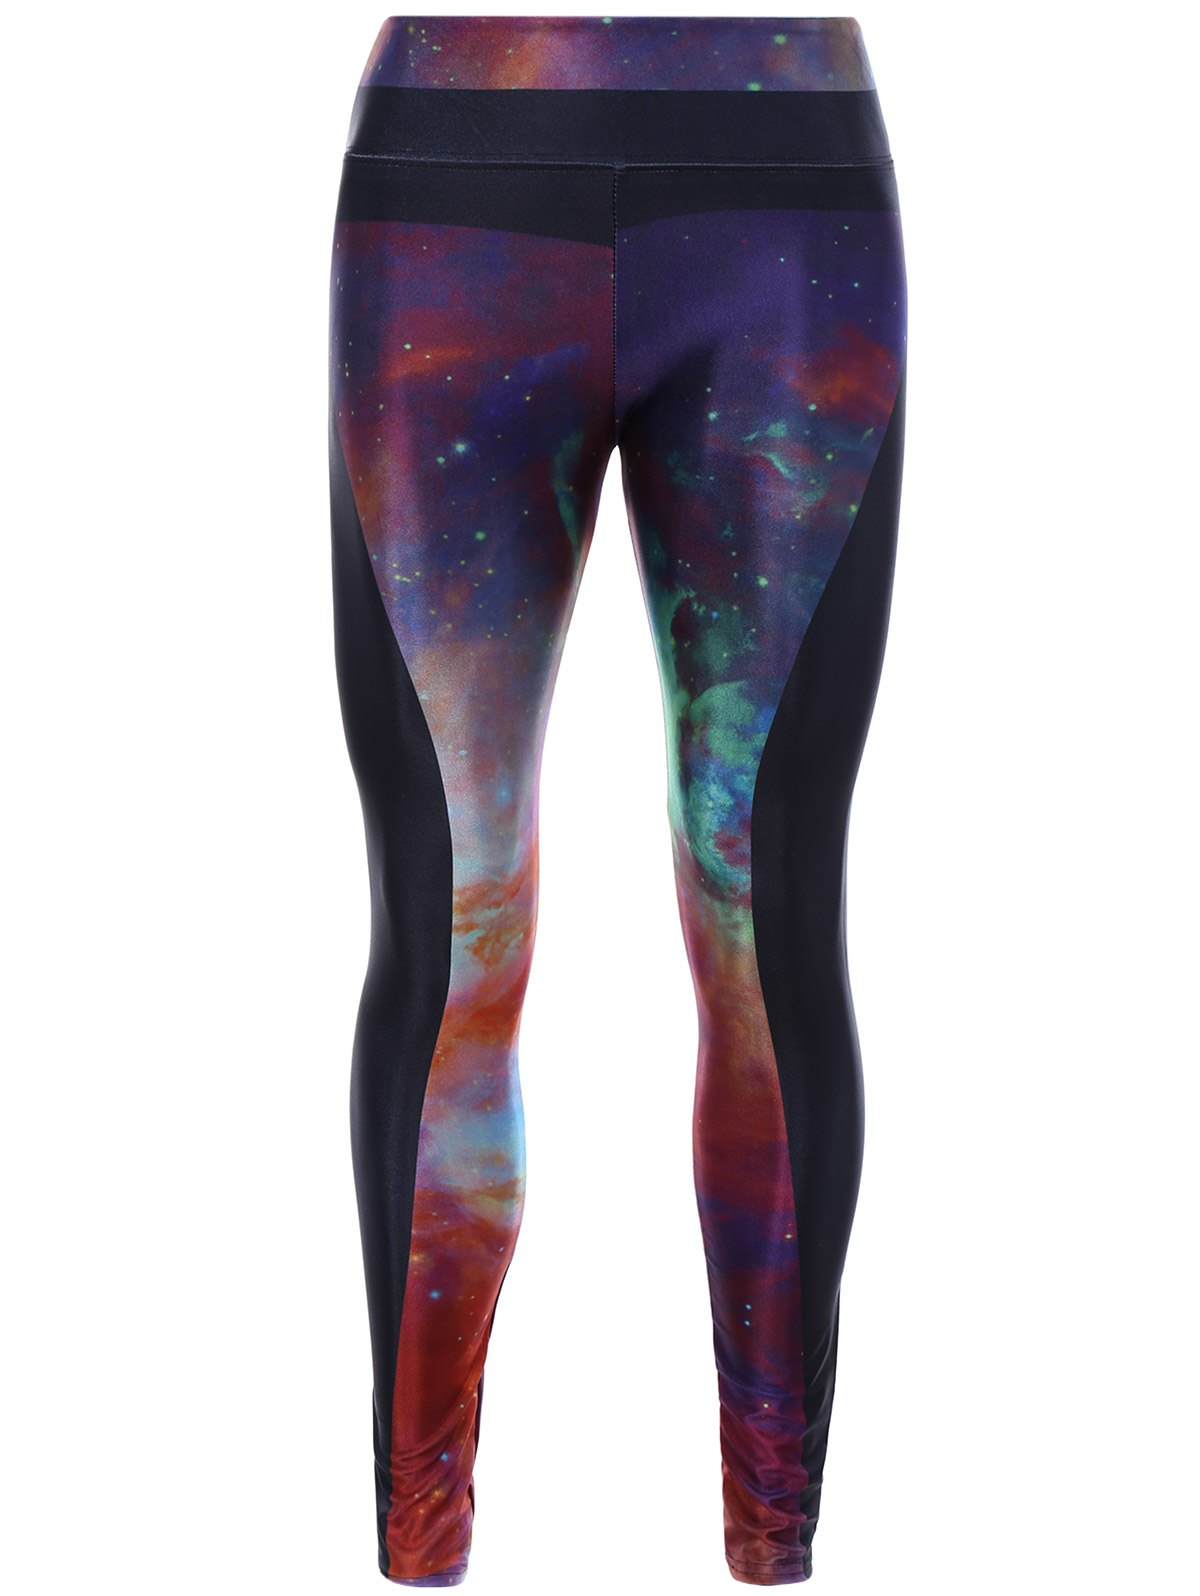 3D Starry Sky Print Skinny Yoga Leggings